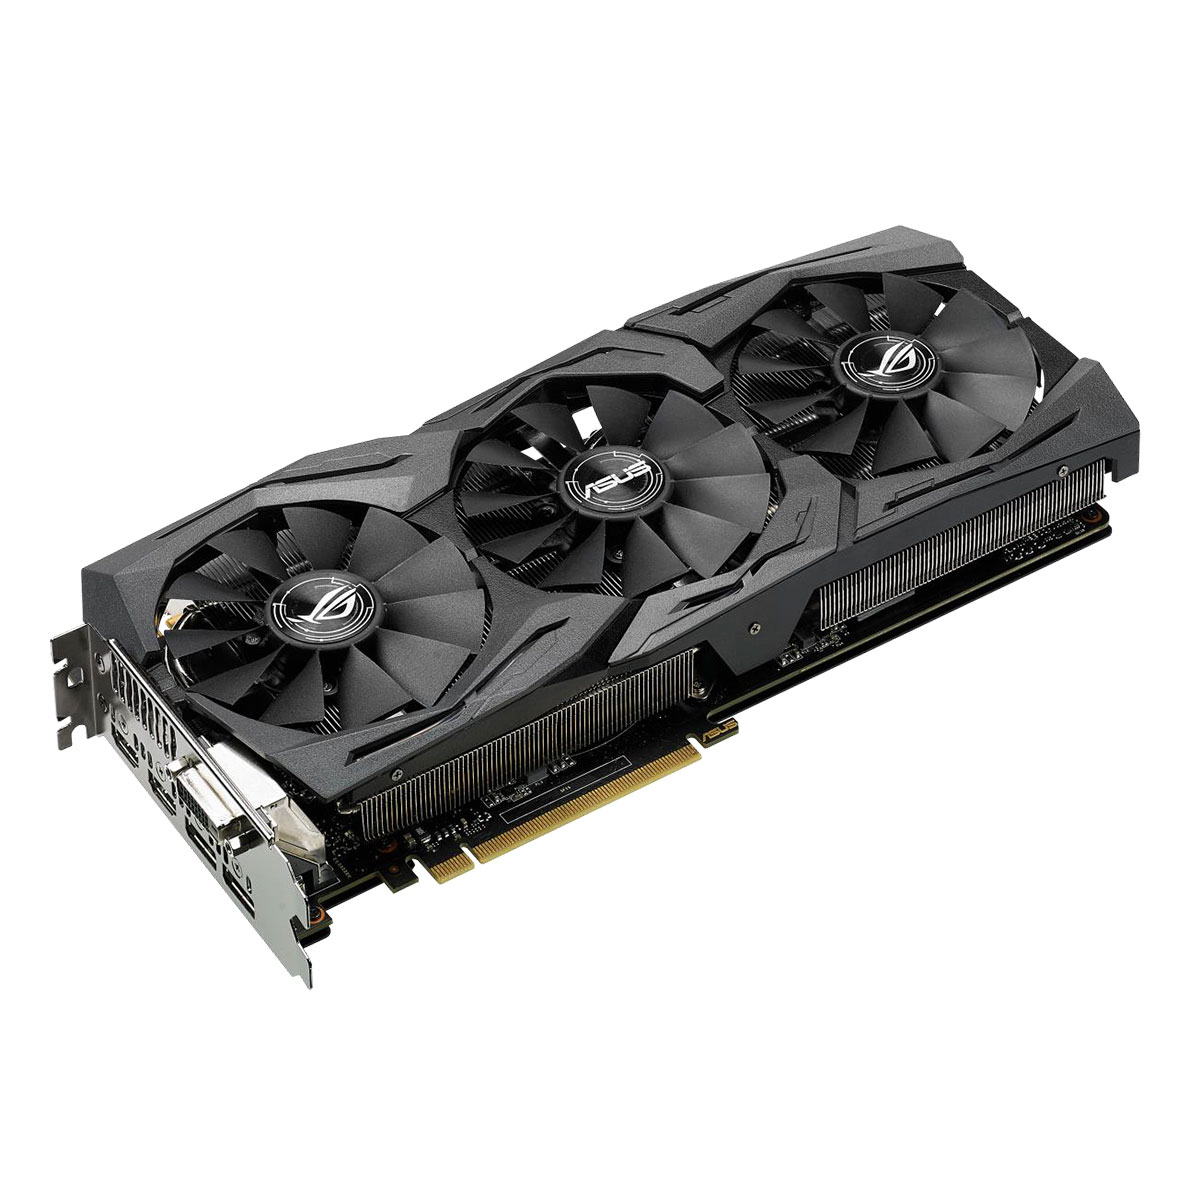 Carte graphique Asus ROG STRIX-GTX1060-6G-GAMING  PCIe 3.0, informatique reunion, informatique ile de la Réunion 974